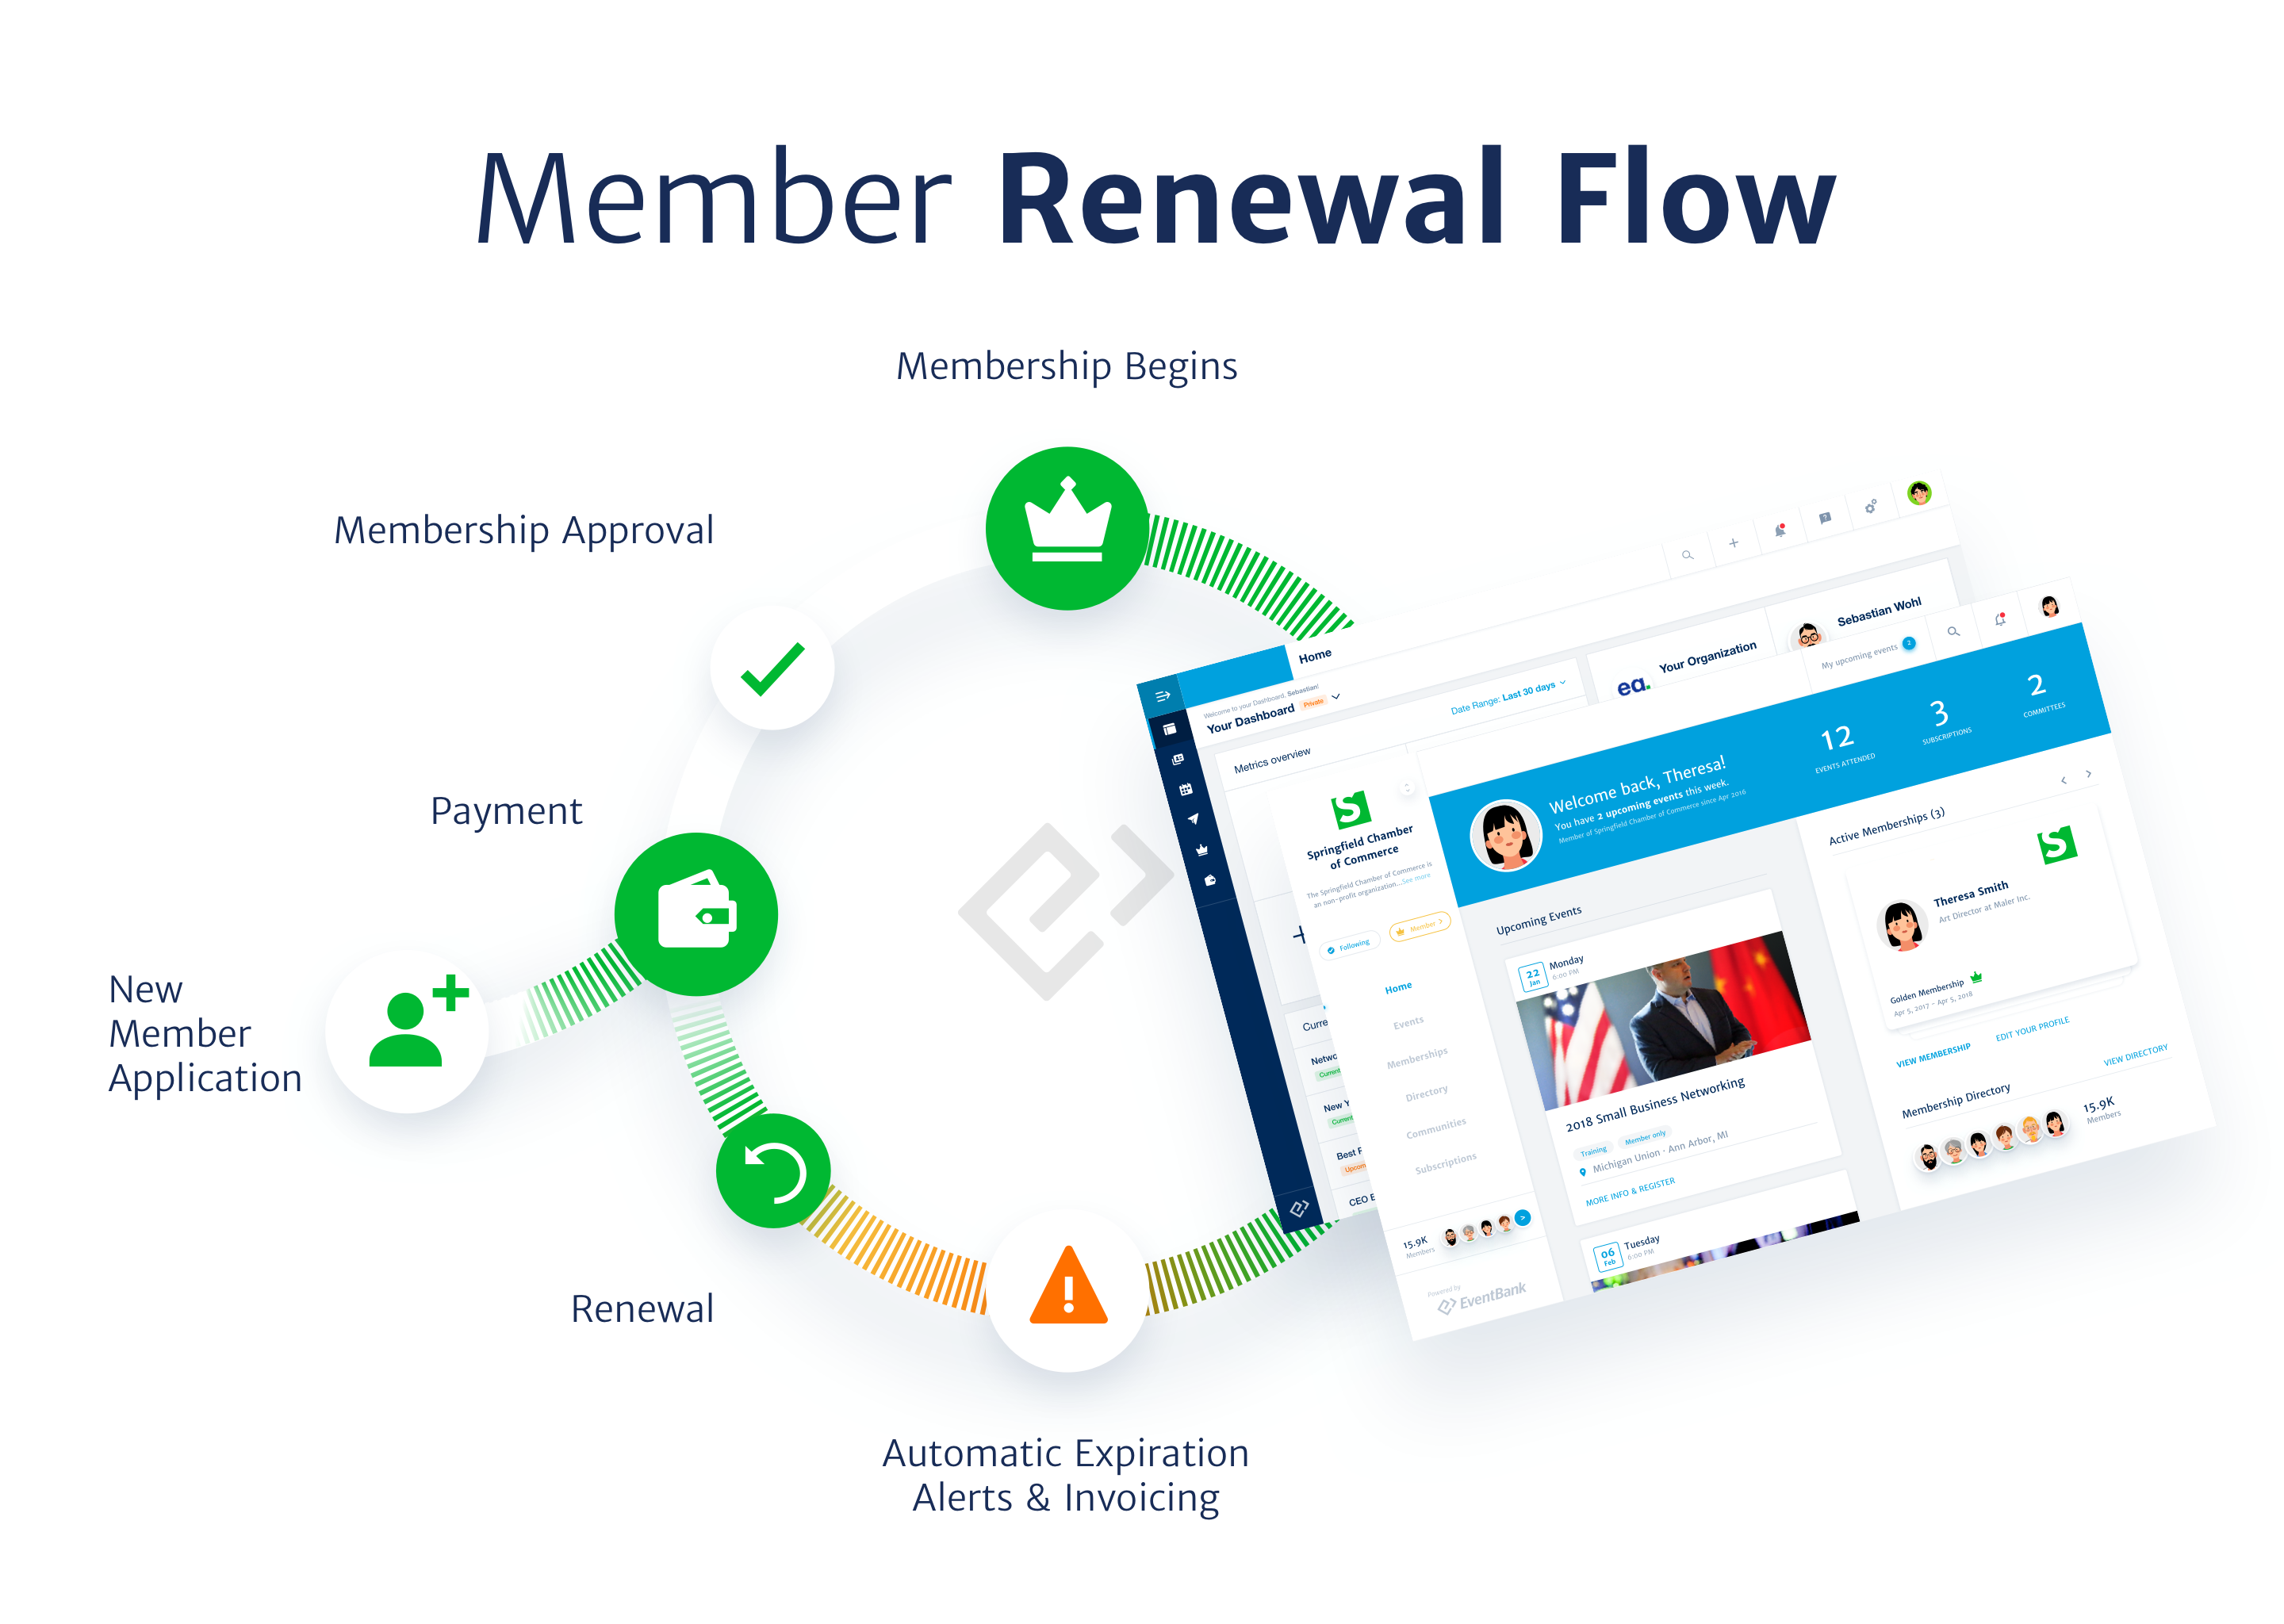 Glue Up Membership renewal flow -  Improve the membership management workflow and maximize retention with automated renewal notices and membership application processes